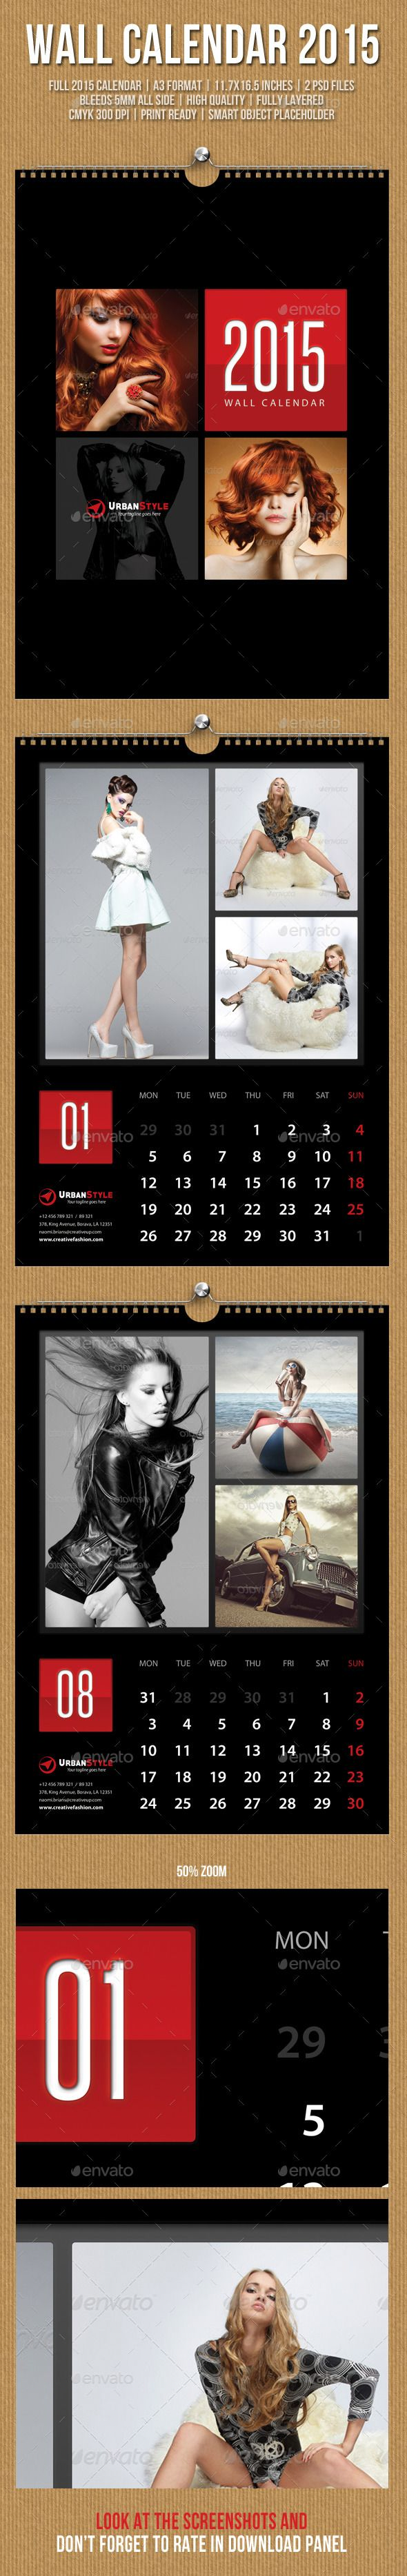 Wall Calendar A3 2015 Template   Buy and Download: http://graphicriver.net/item/wall-calendar-a3-2015-v07/9863688?ref=ksioks